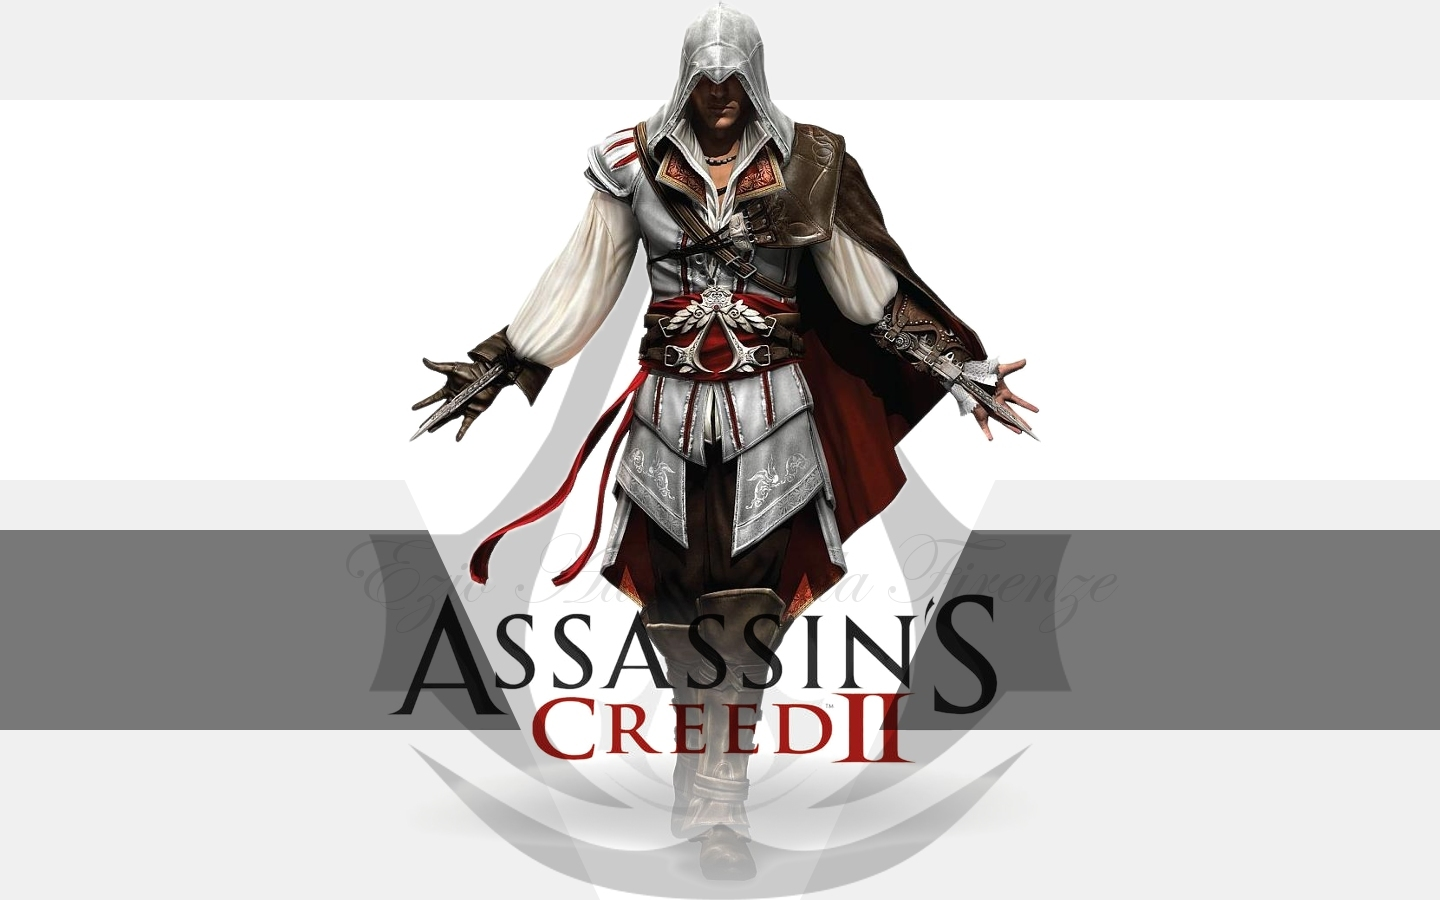 assassins_creed_2_wallpaper_hd__jpeg-wide